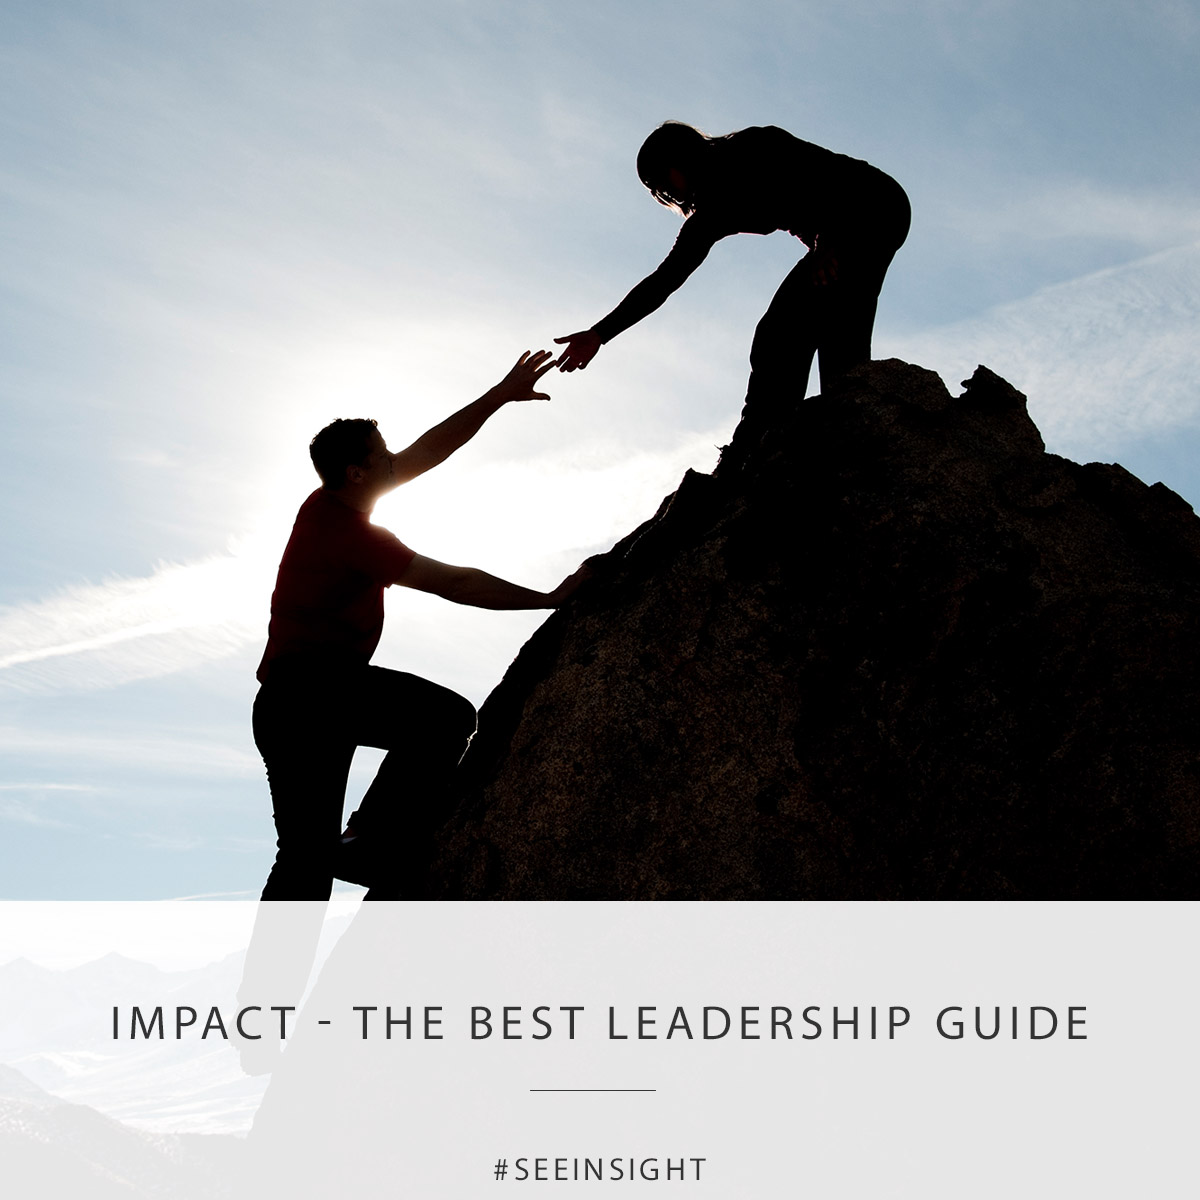 IMPACT - Leadership Guide